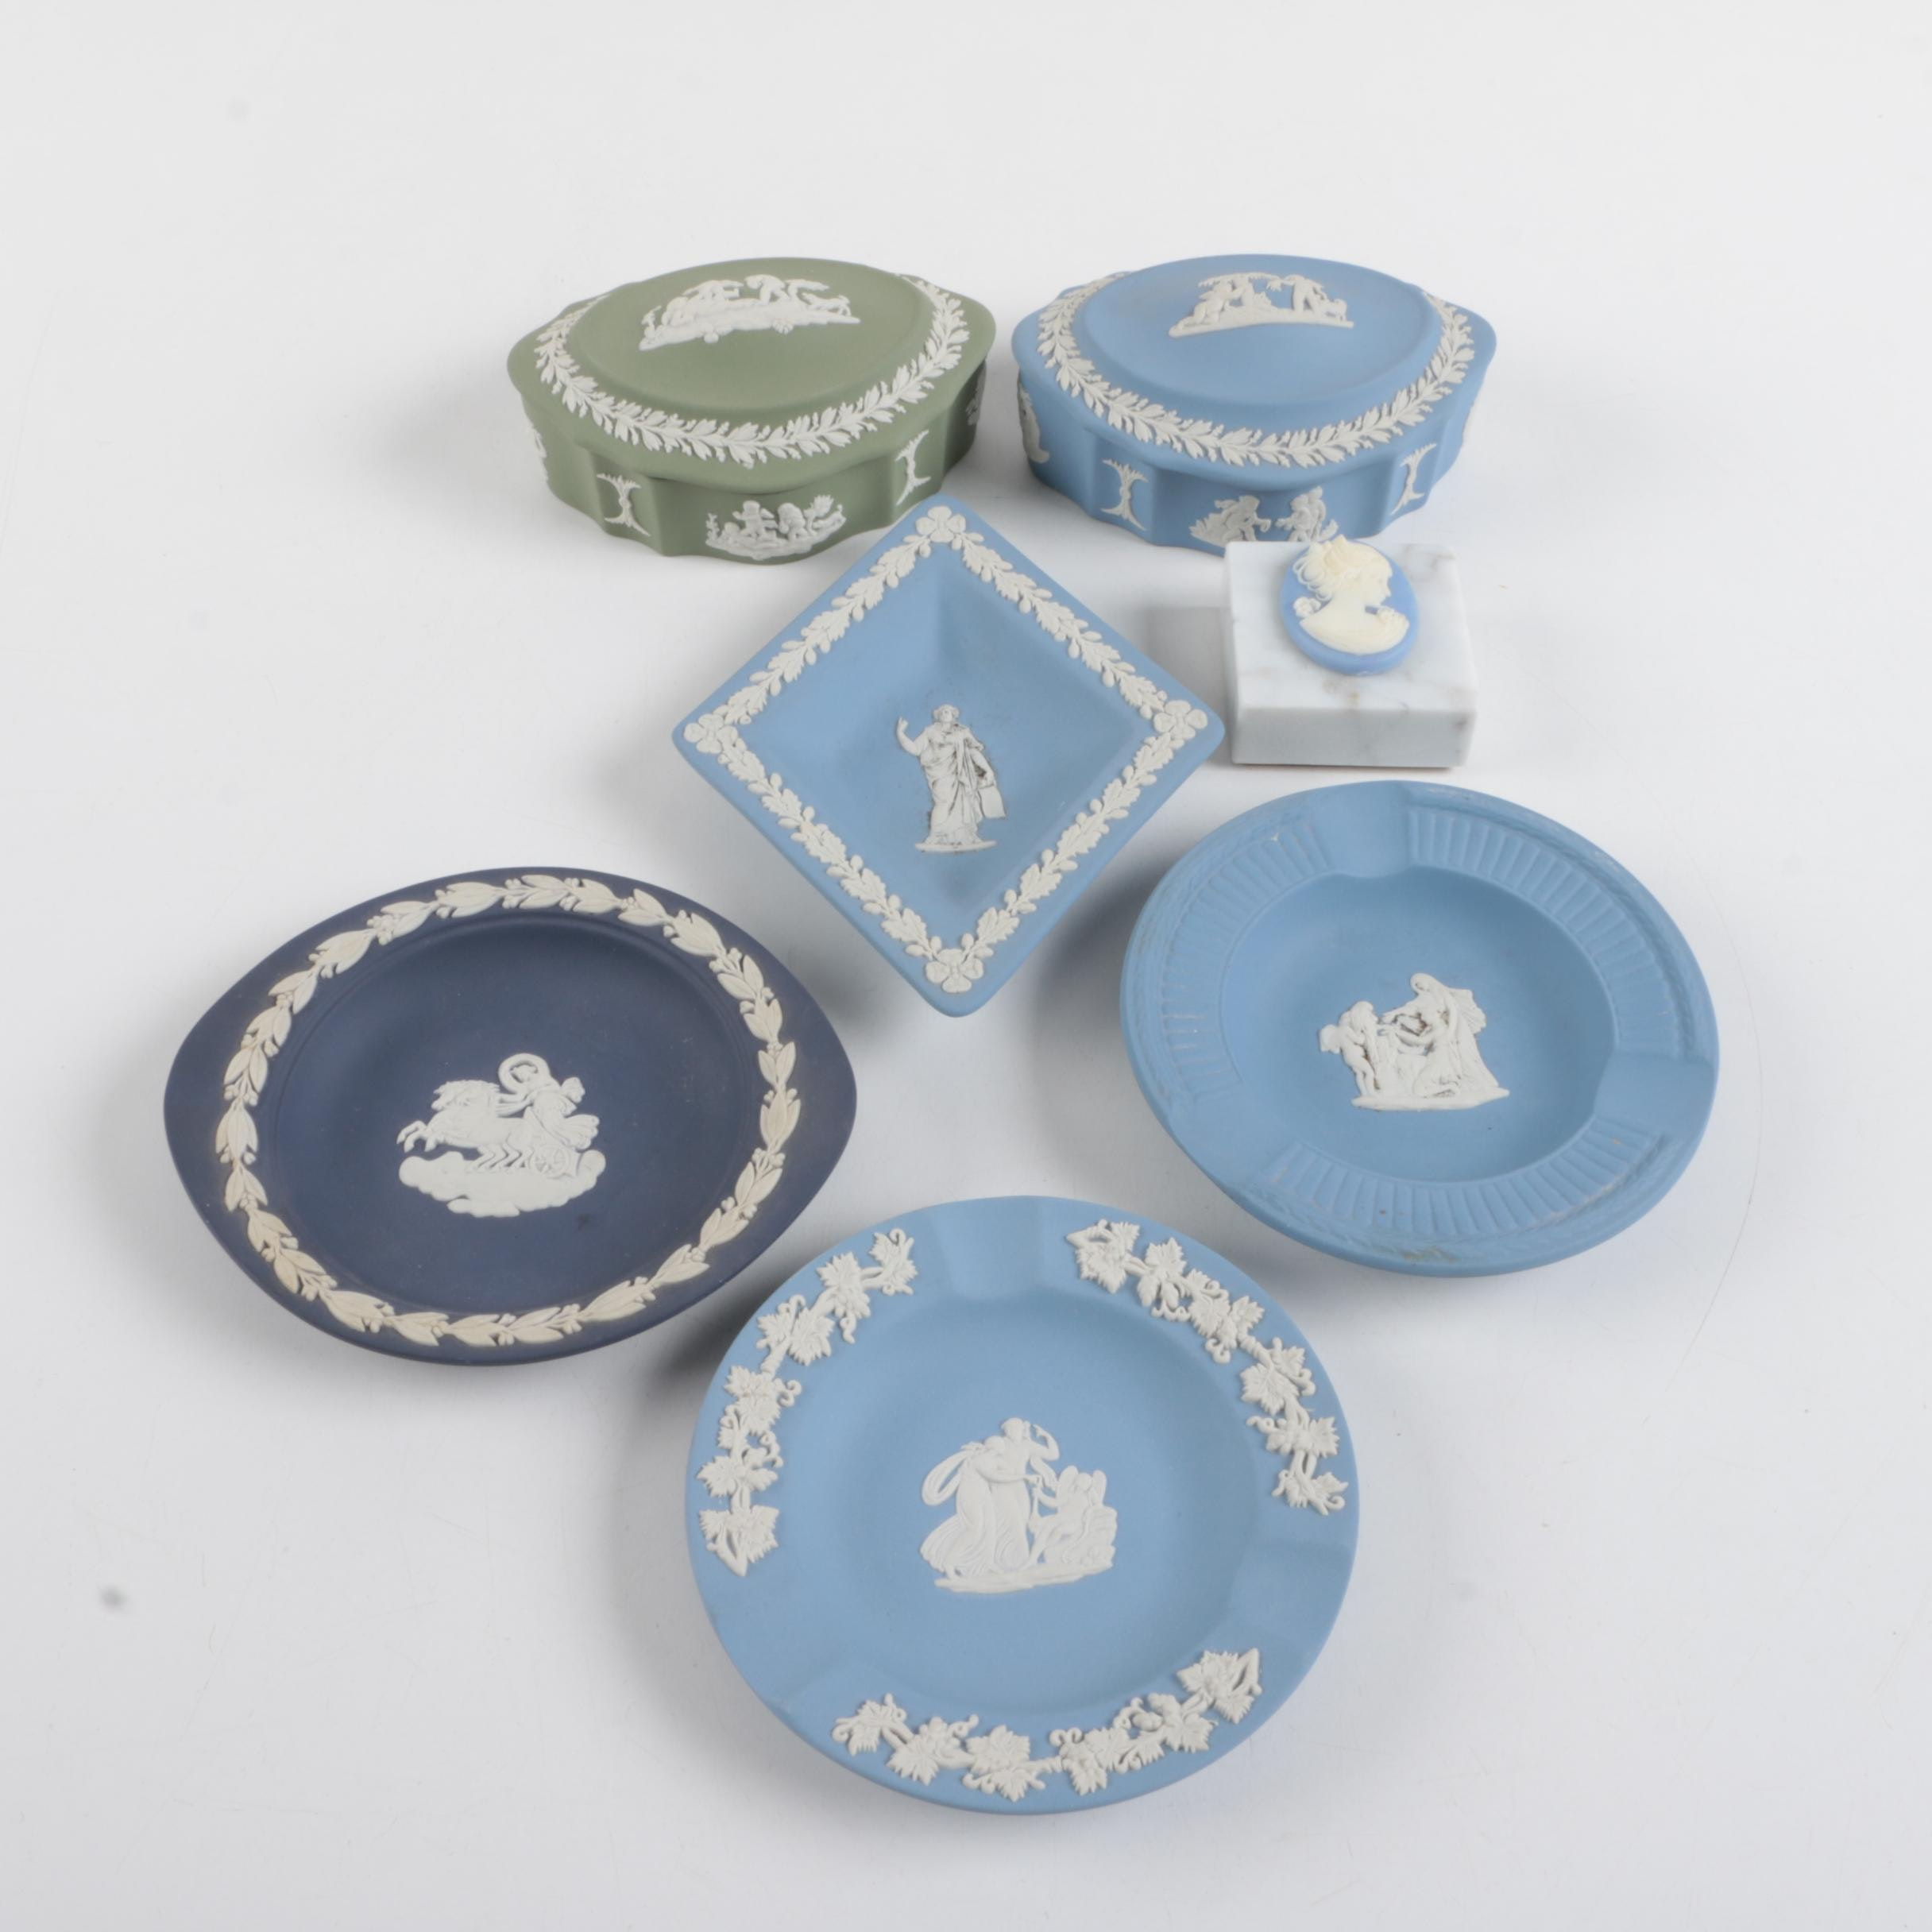 Wedgwood Jasperware Candy Boxes, Ashtrays, and Dishes